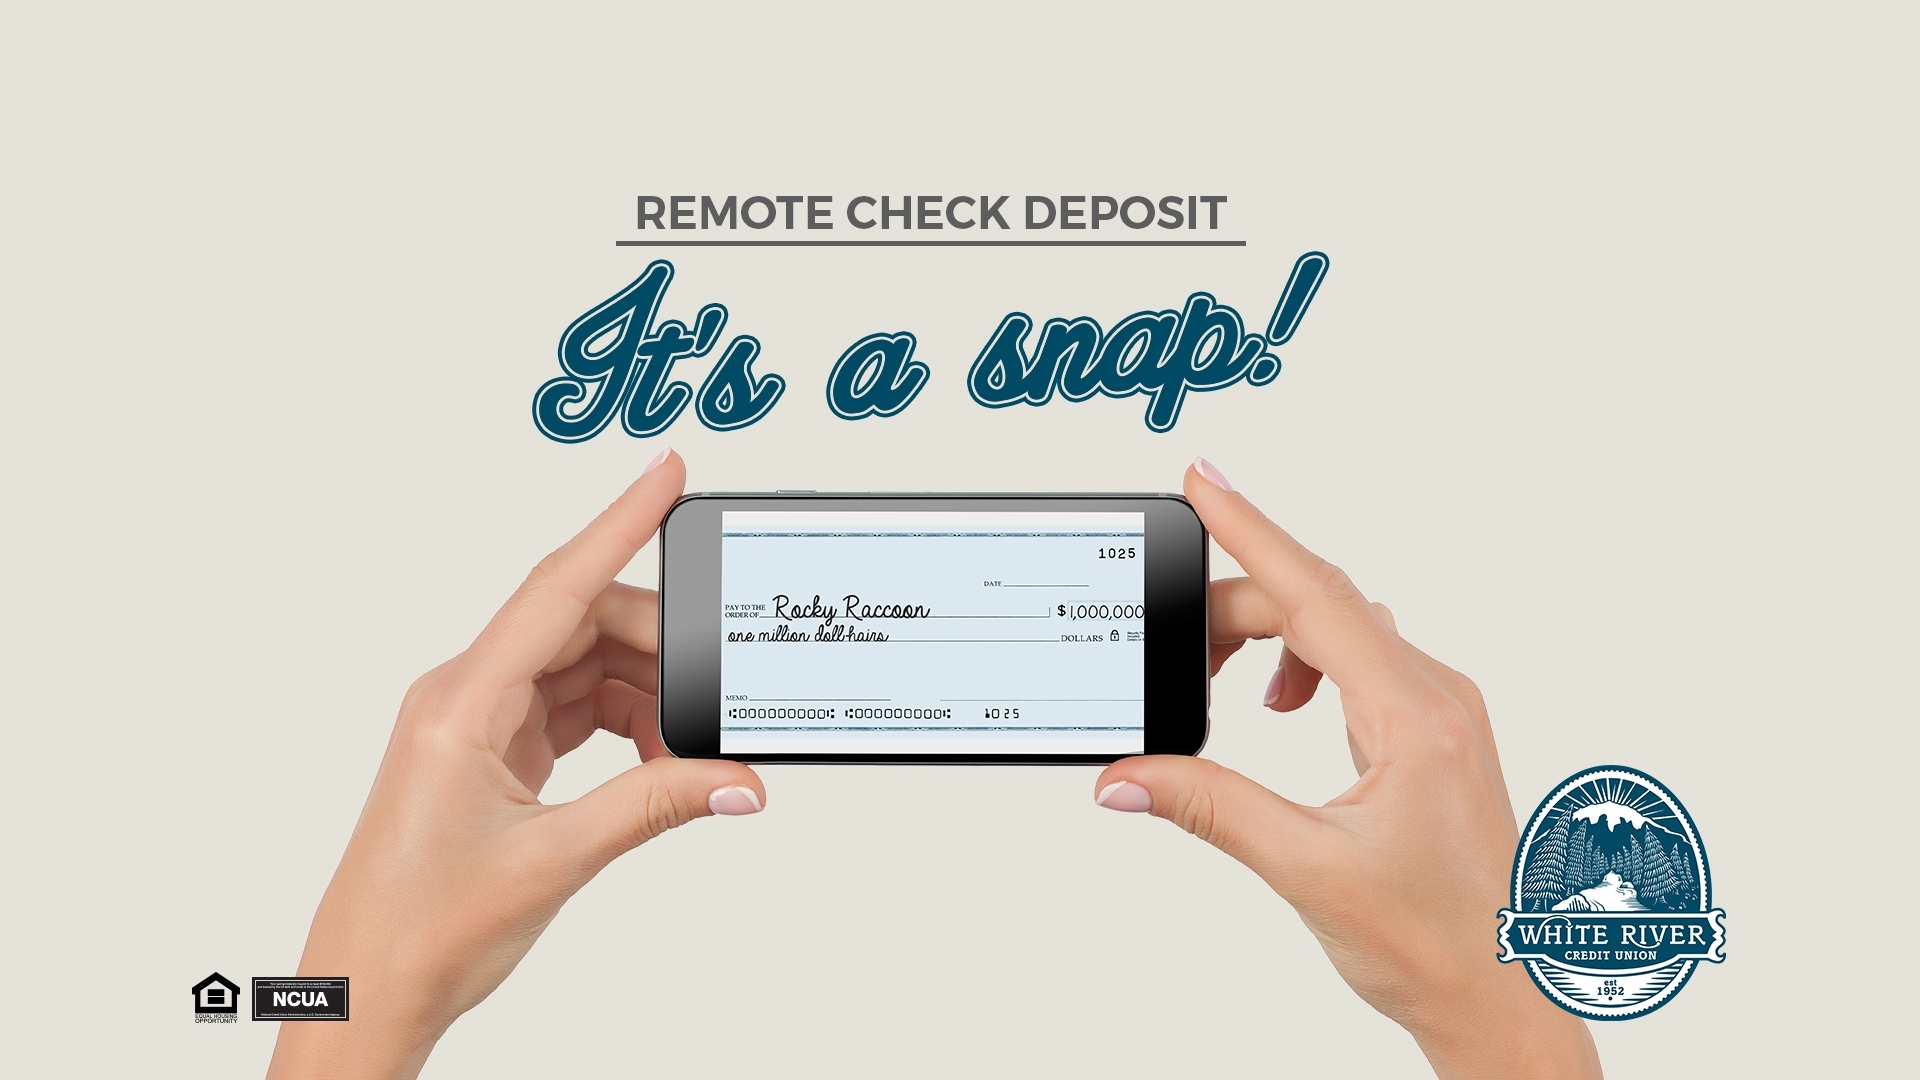 Remote check deposit It's a snap!